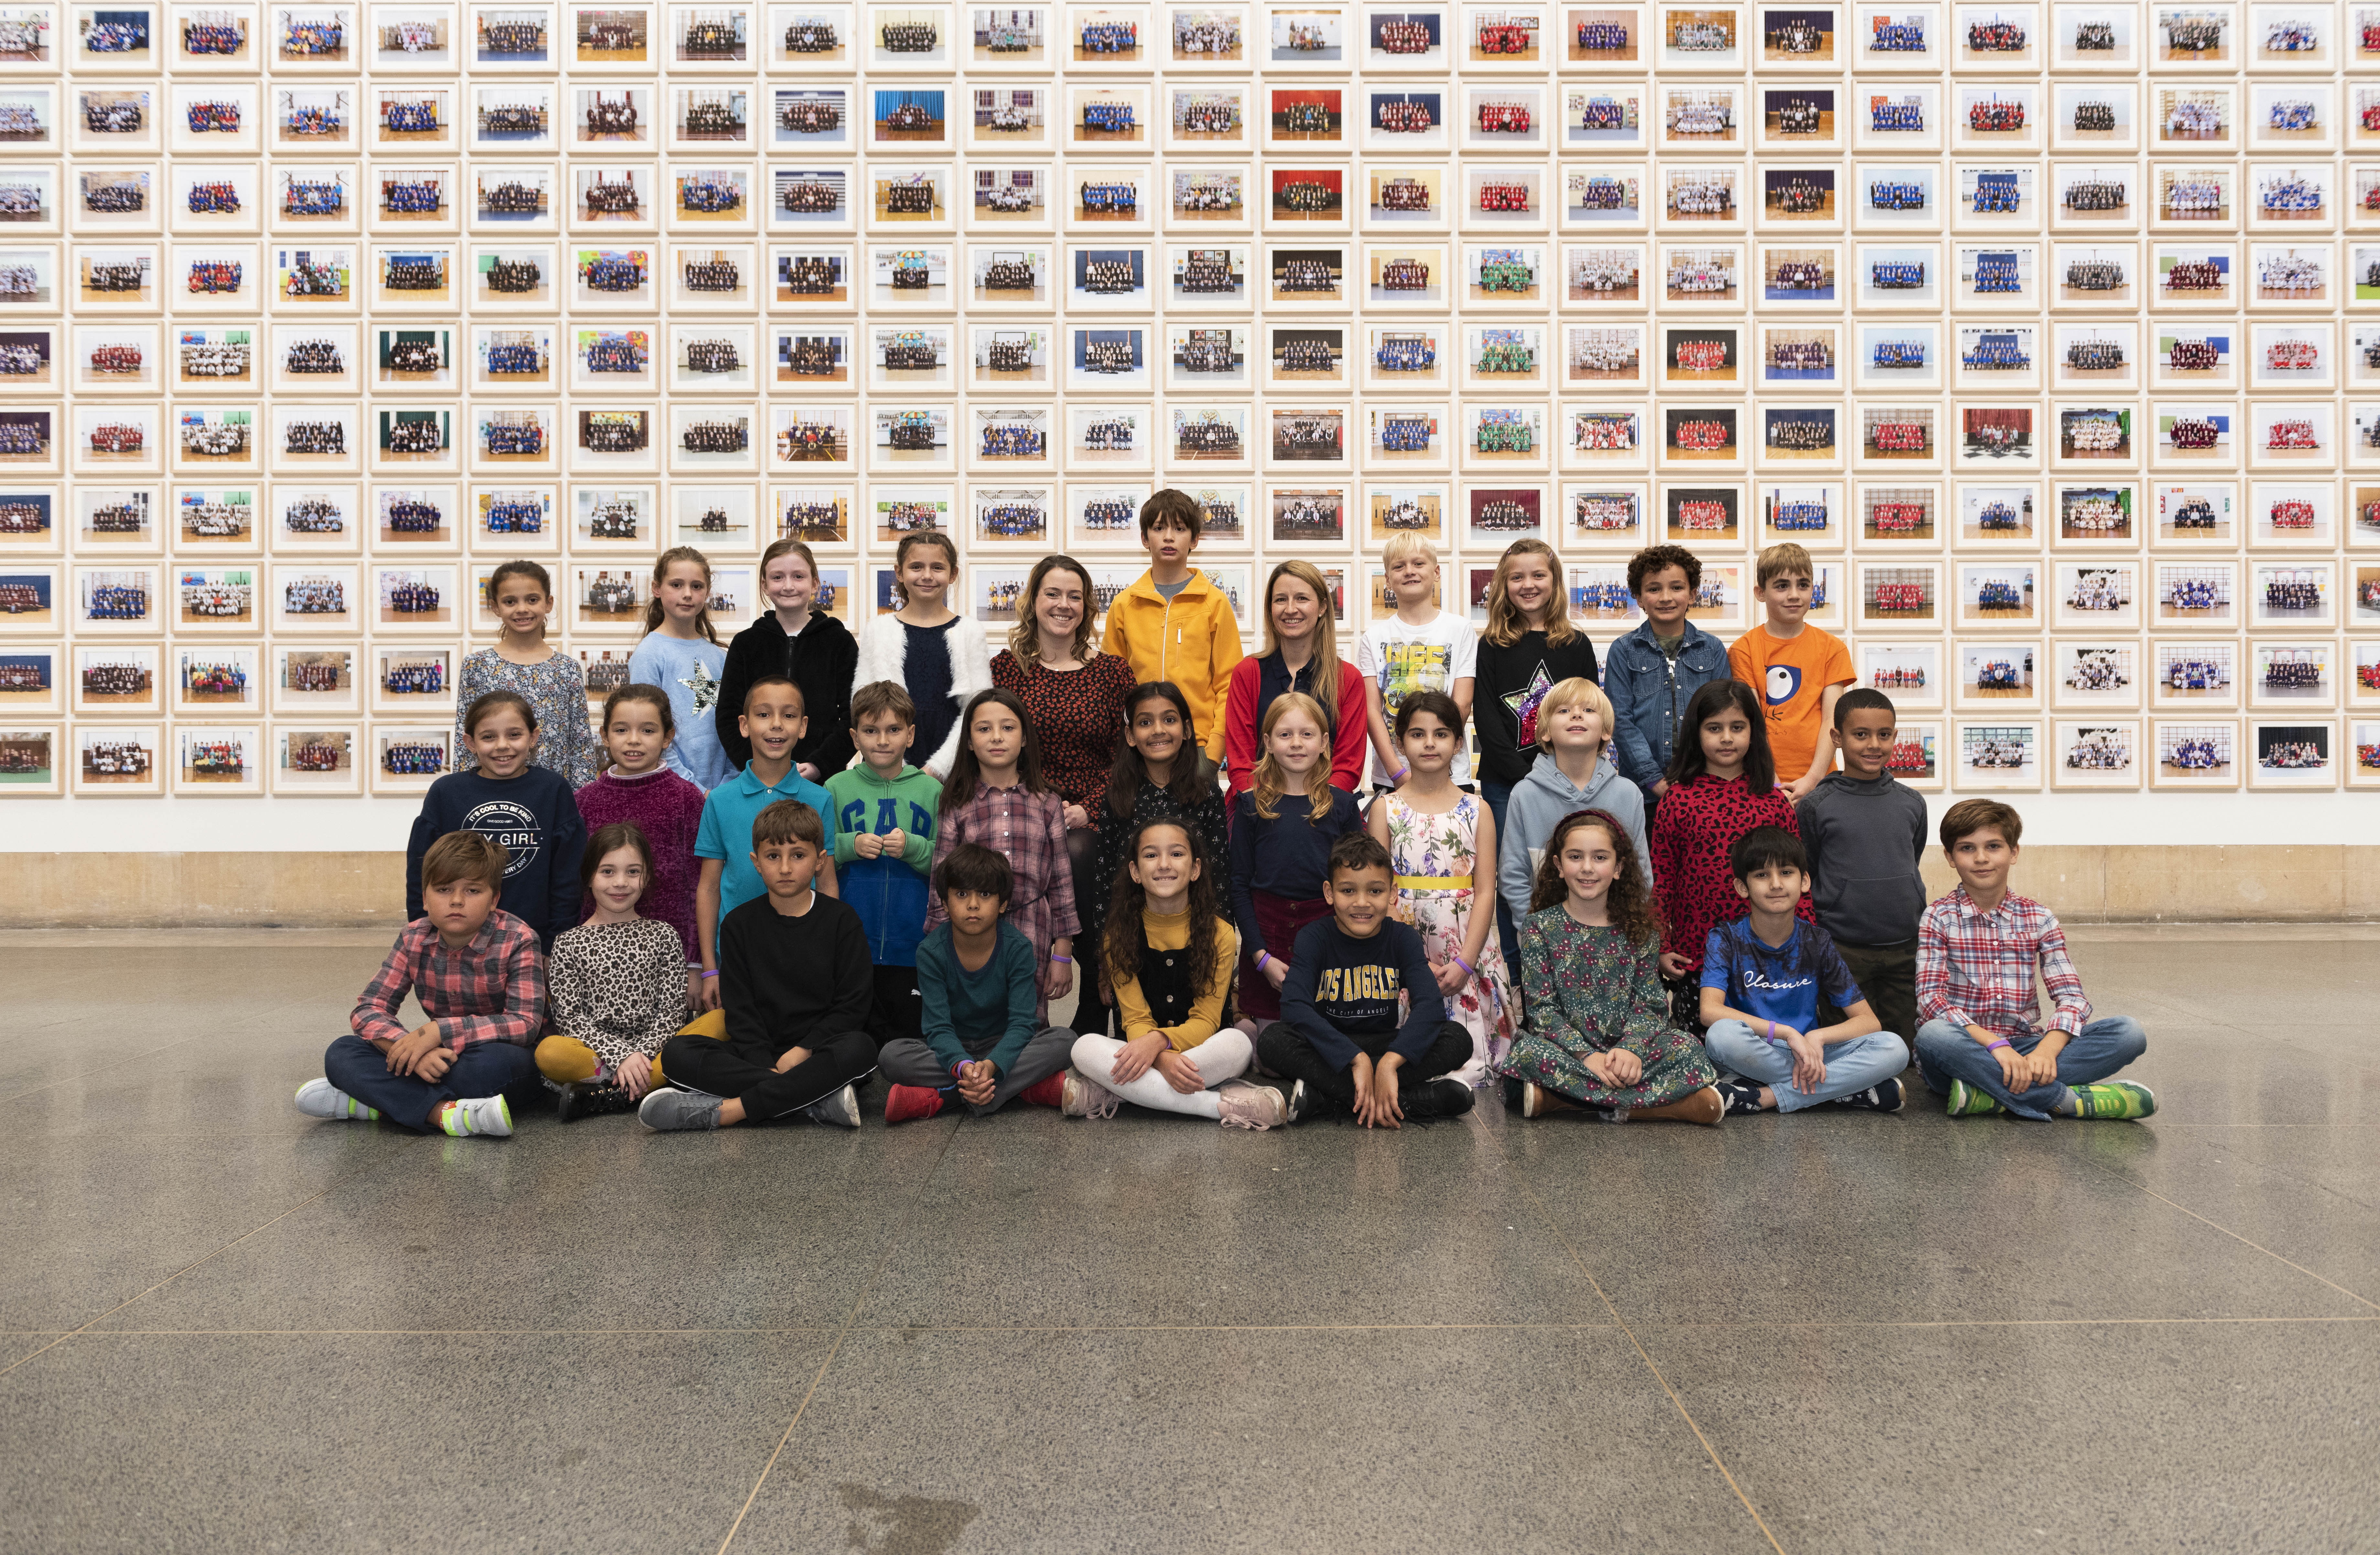 Children with their portraits at Tate Britain